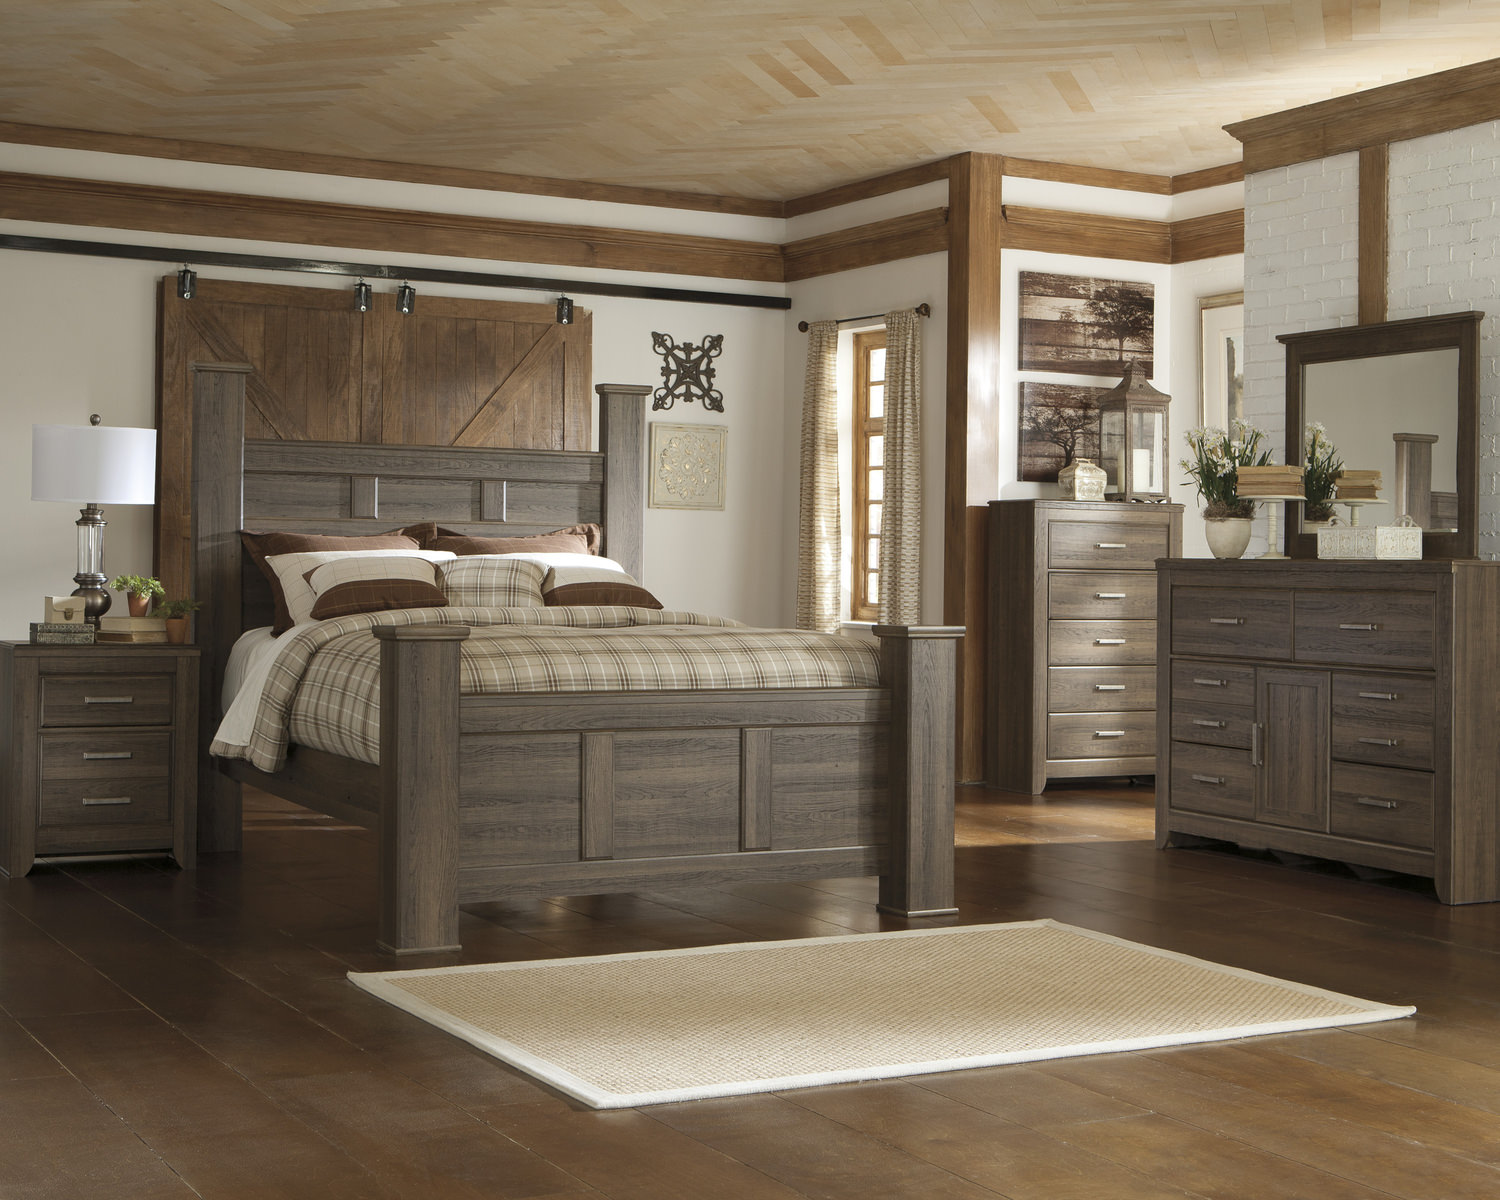 Santa Cruz Bedroom Furniture Santa Cruz Poster Bed Bedroom Suite Hom Furniture Furniture